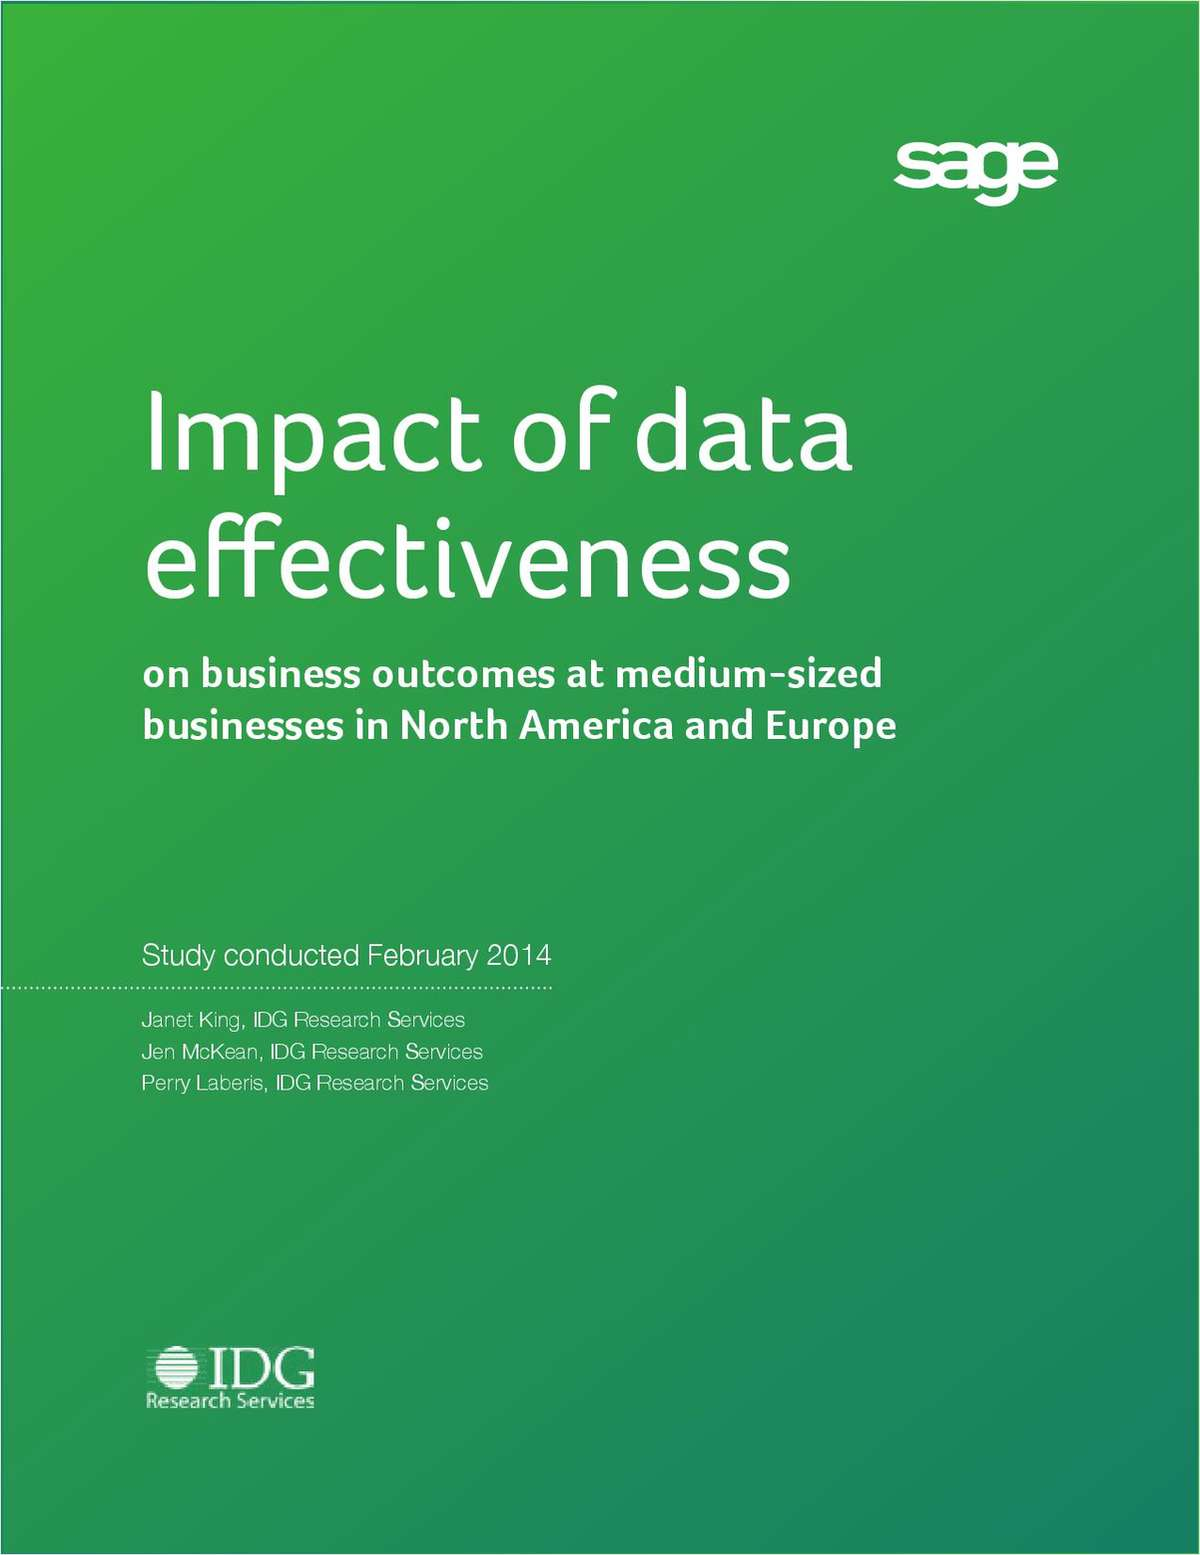 Impact of Data Effectiveness on Business Outcomes at Medium-Sized Businesses in North America and Europe